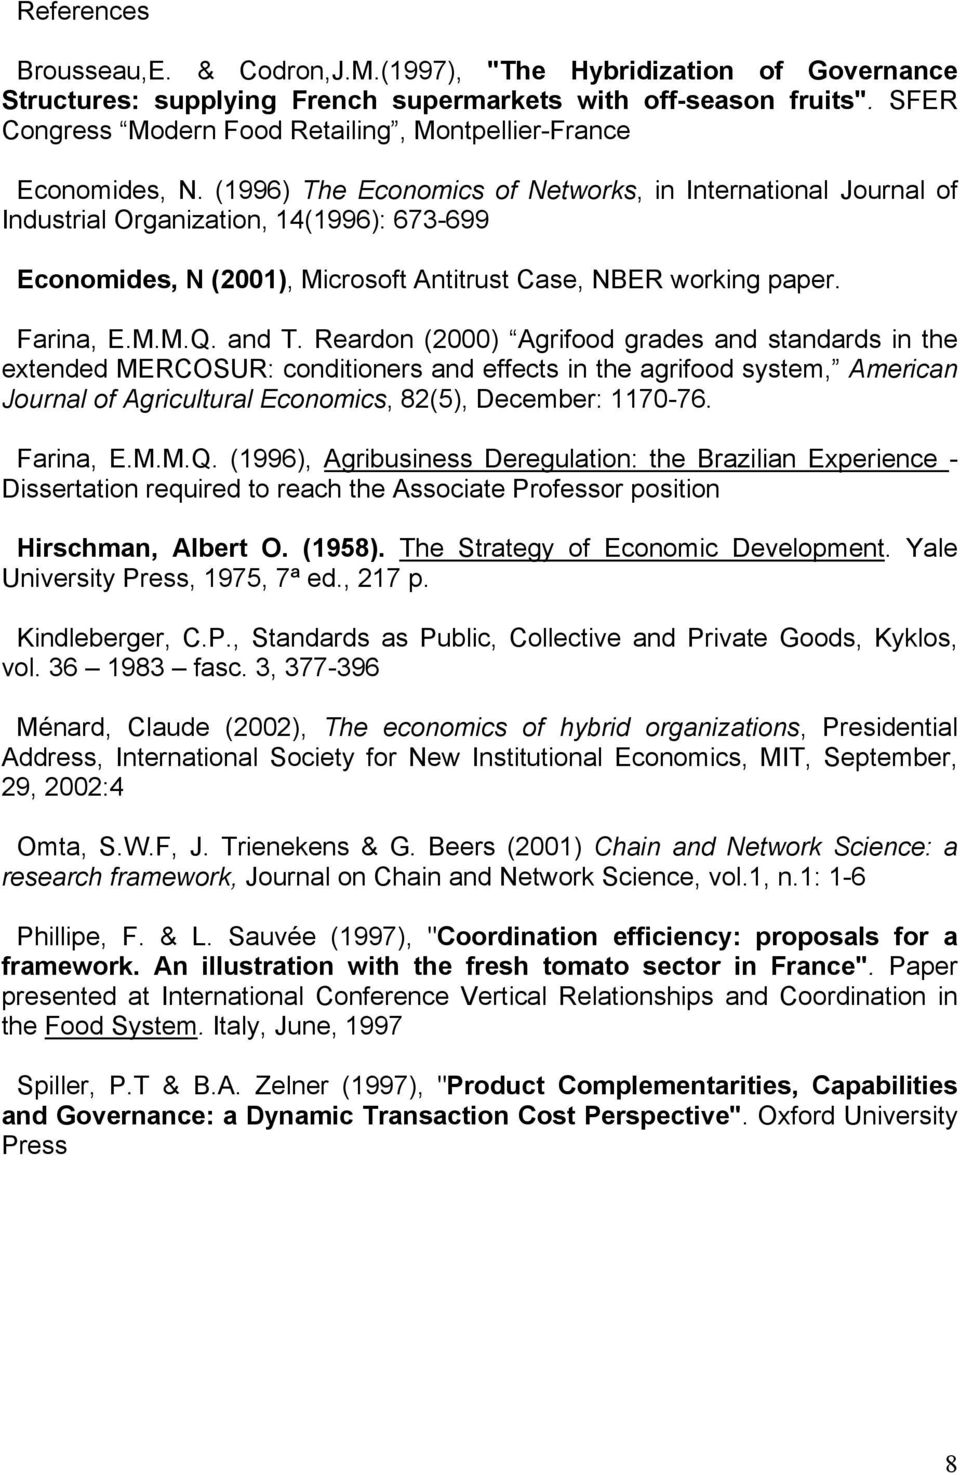 (1996) The Economics of Networks, in International Journal of Industrial Organization, 14(1996): 673-699 Economides, N (2001), Microsoft Antitrust Case, NBER working paper. Farina, E.M.M.Q. and T.